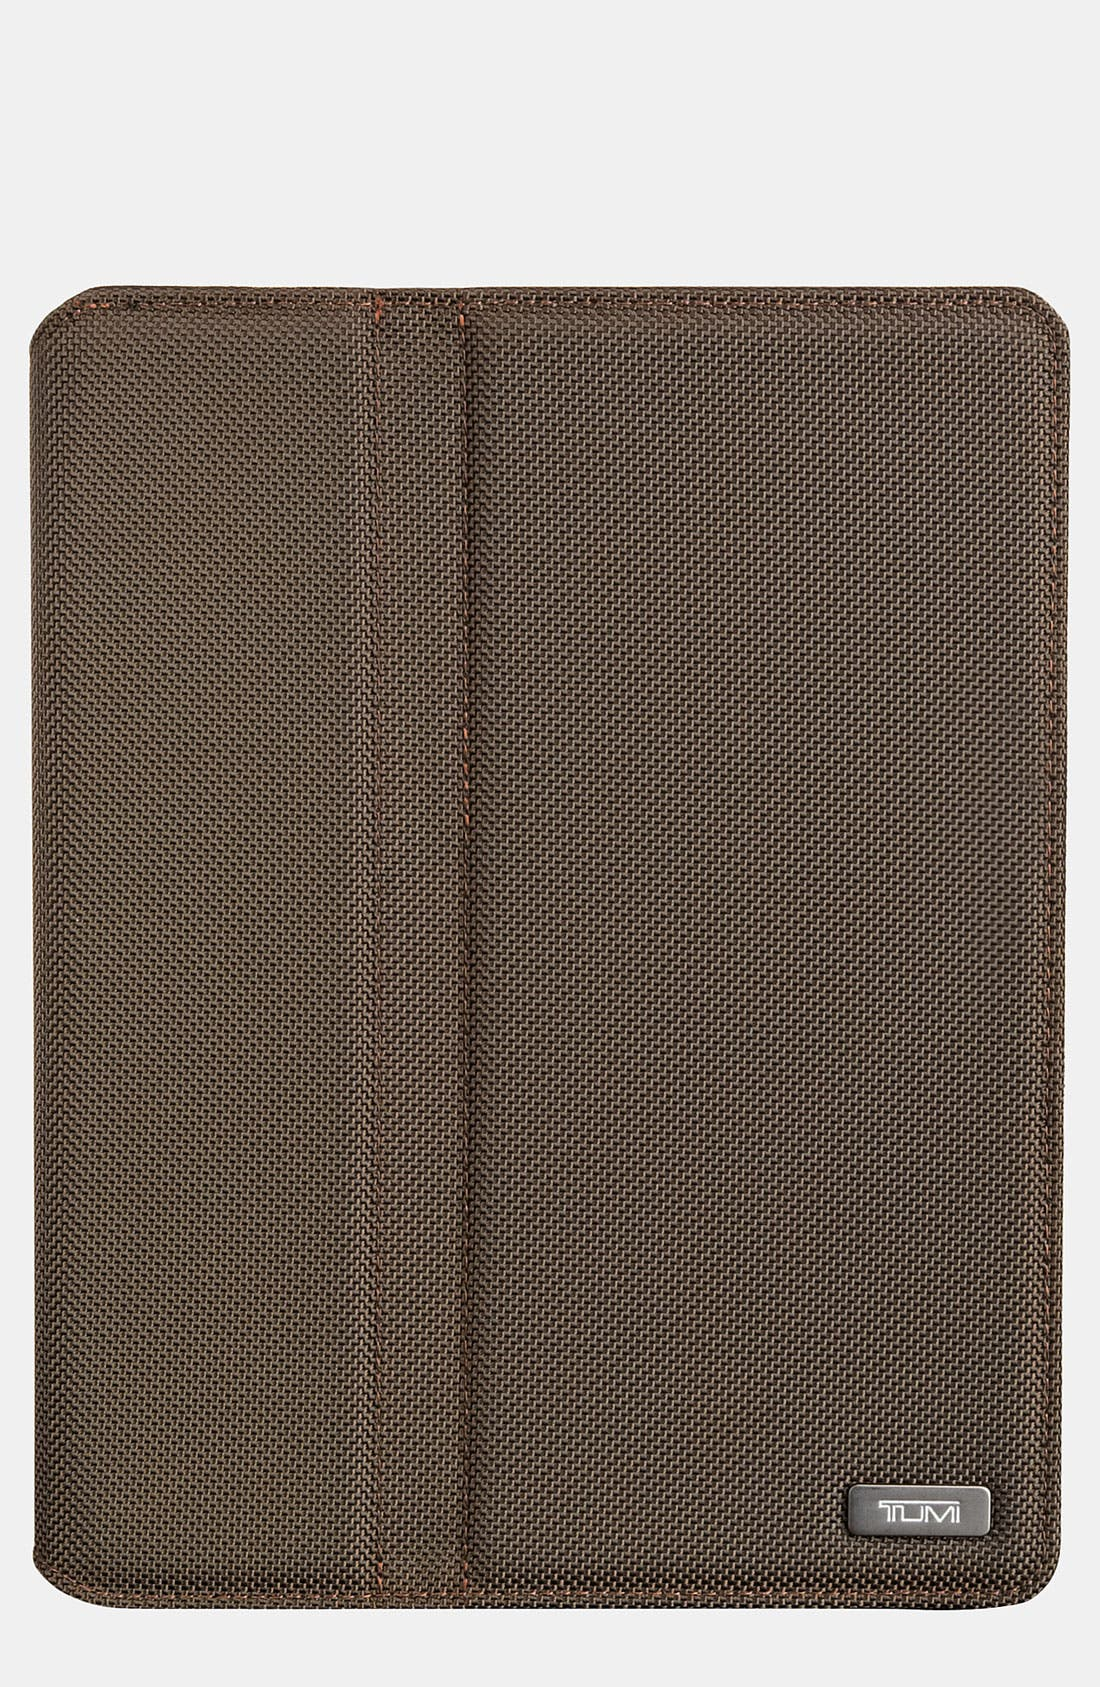 Main Image - Tumi iPad Snap Case